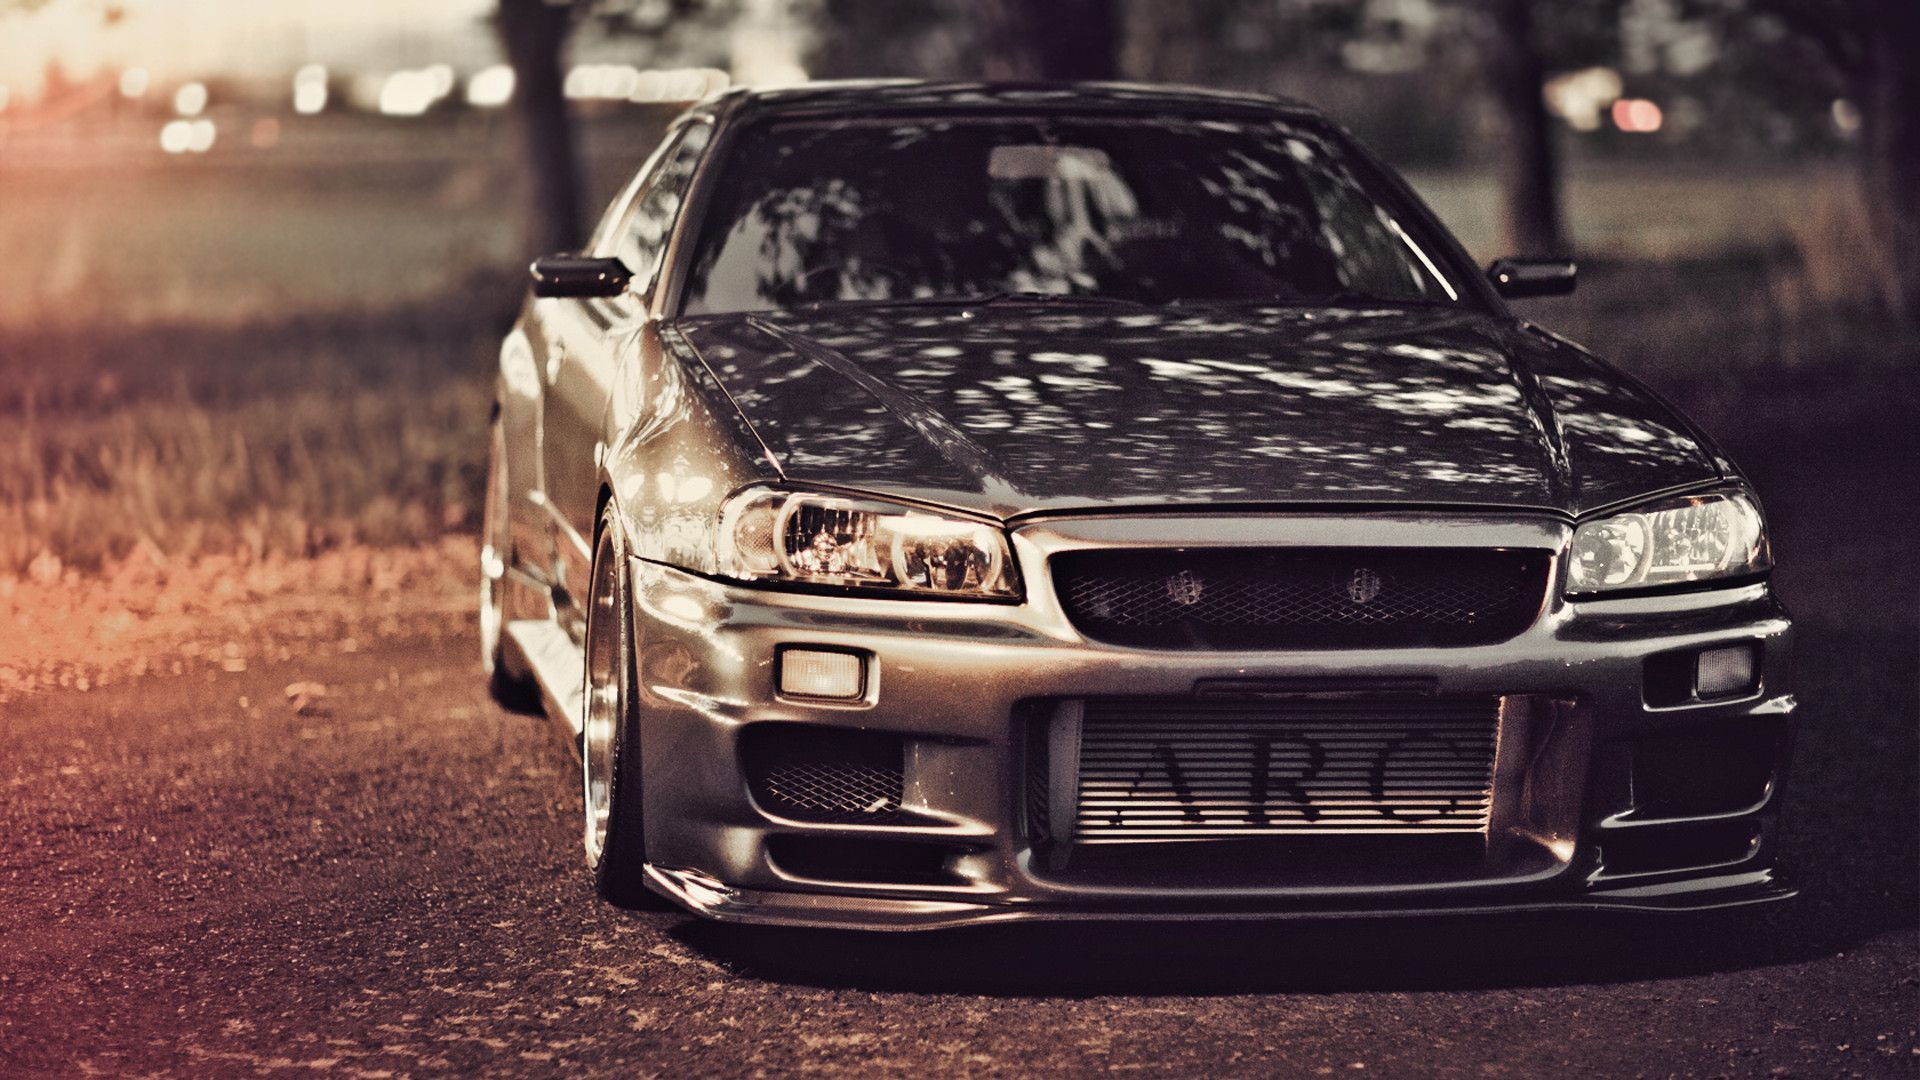 Wallpapers Nissan Skyline Gt R R34 Nissan Tuning Road